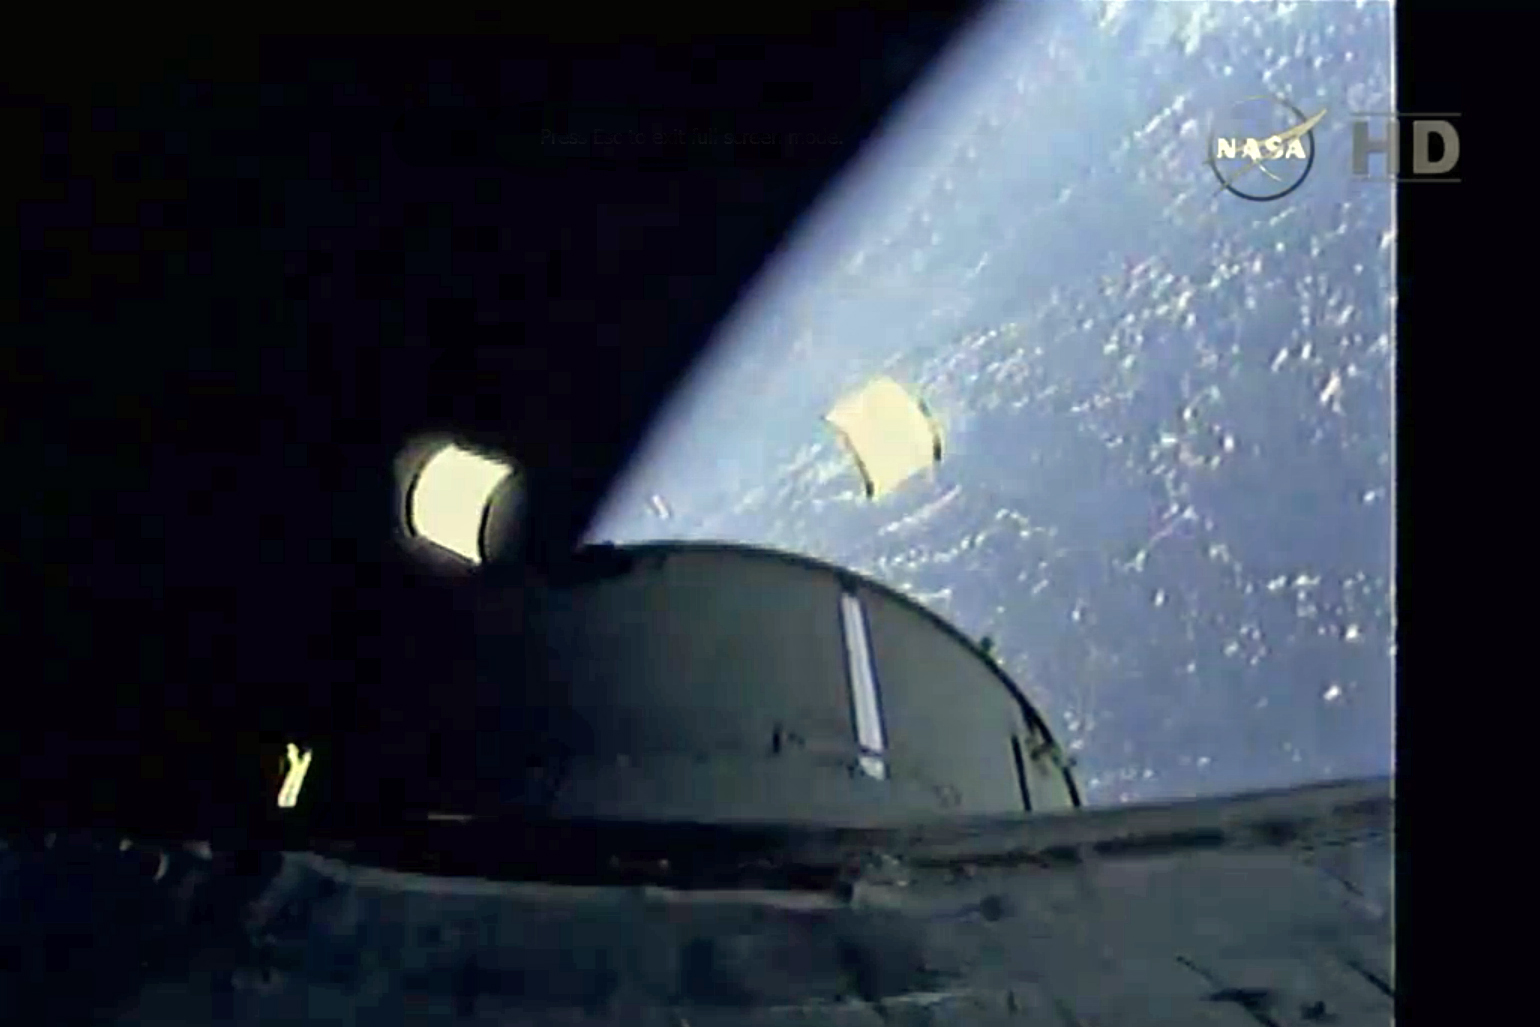 Seven minutes into the mission, the first two critical milestones were completed as Orion's service module fairing separated from the rocket